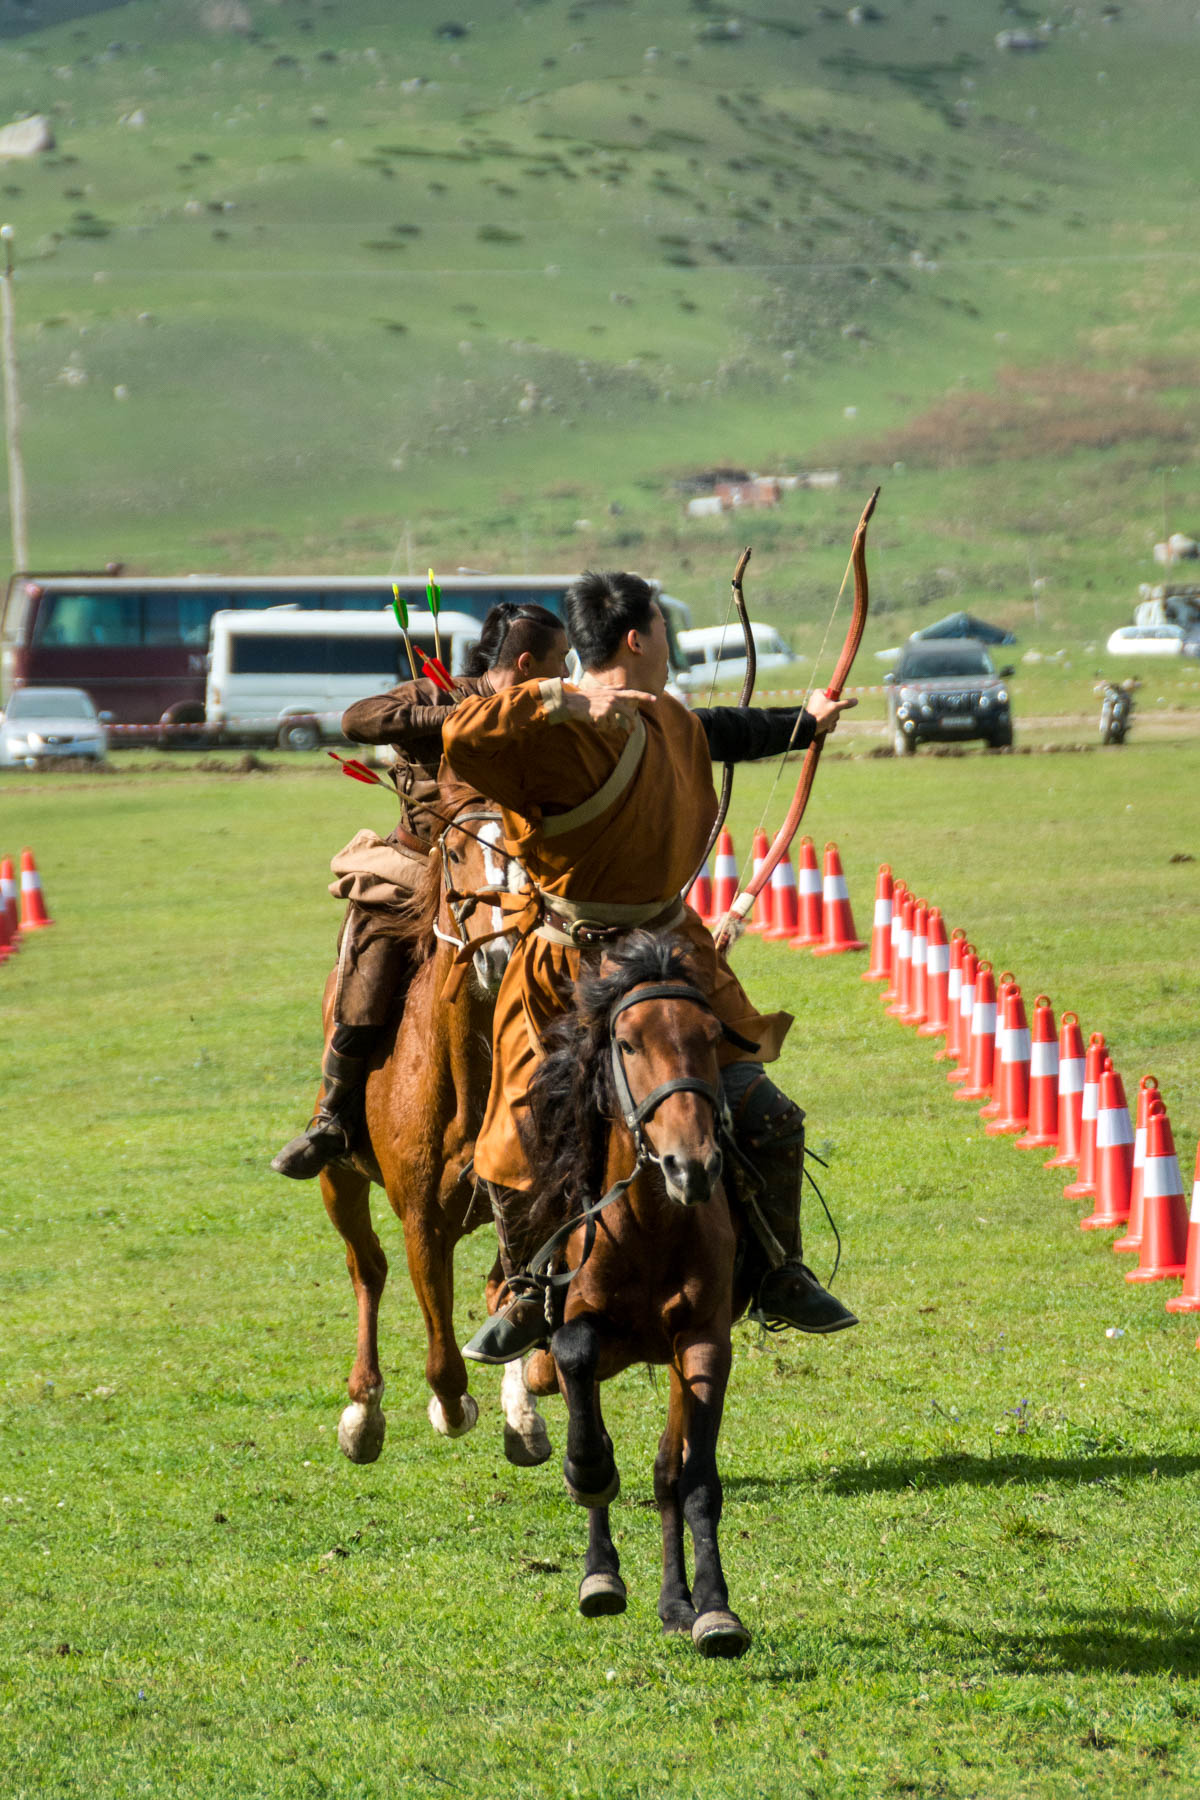 Horseback archery at the World Nomad Games in 2016 - Are the 2018 World Nomad Games worth the trip? - Lost With Purpose